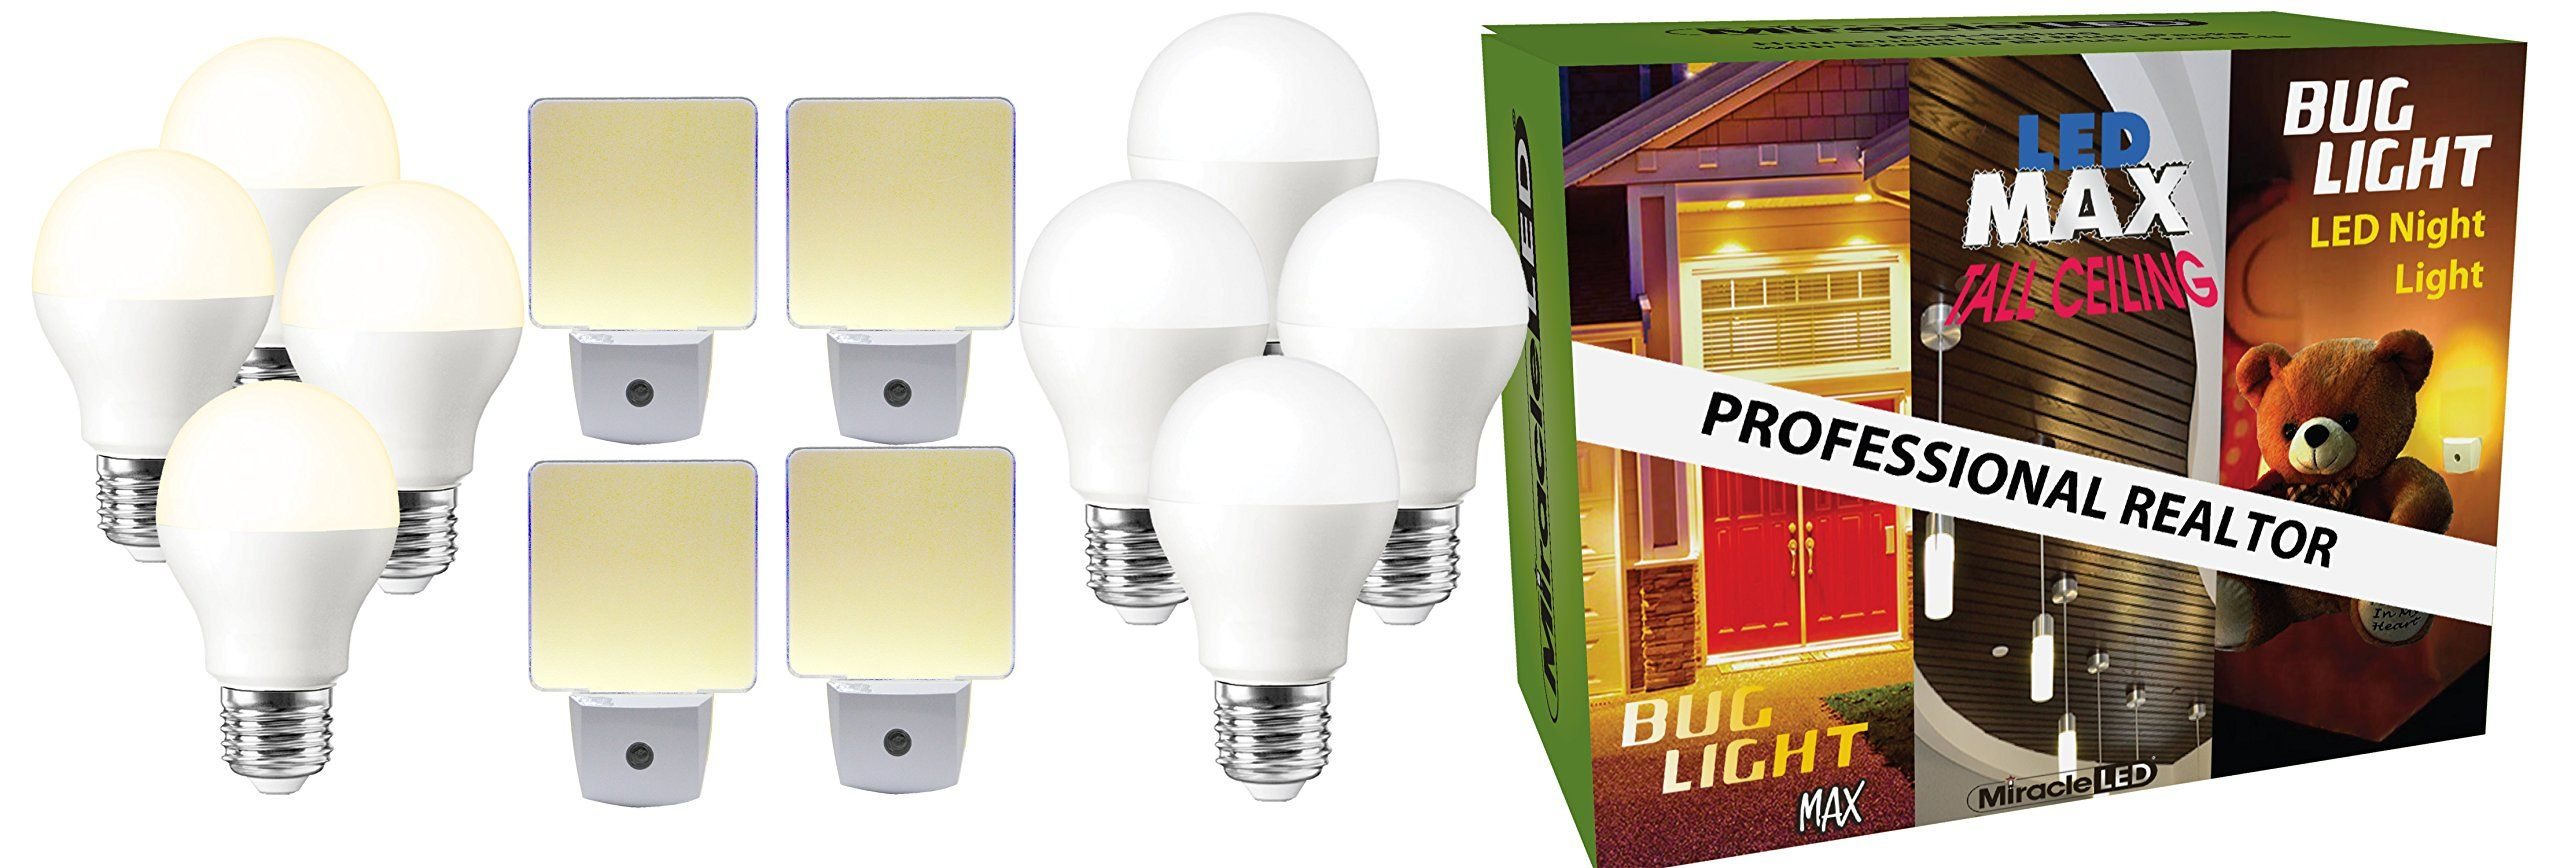 Miracleled 604156 Home Makeover Combo Pack 4 Bug Light Max Led